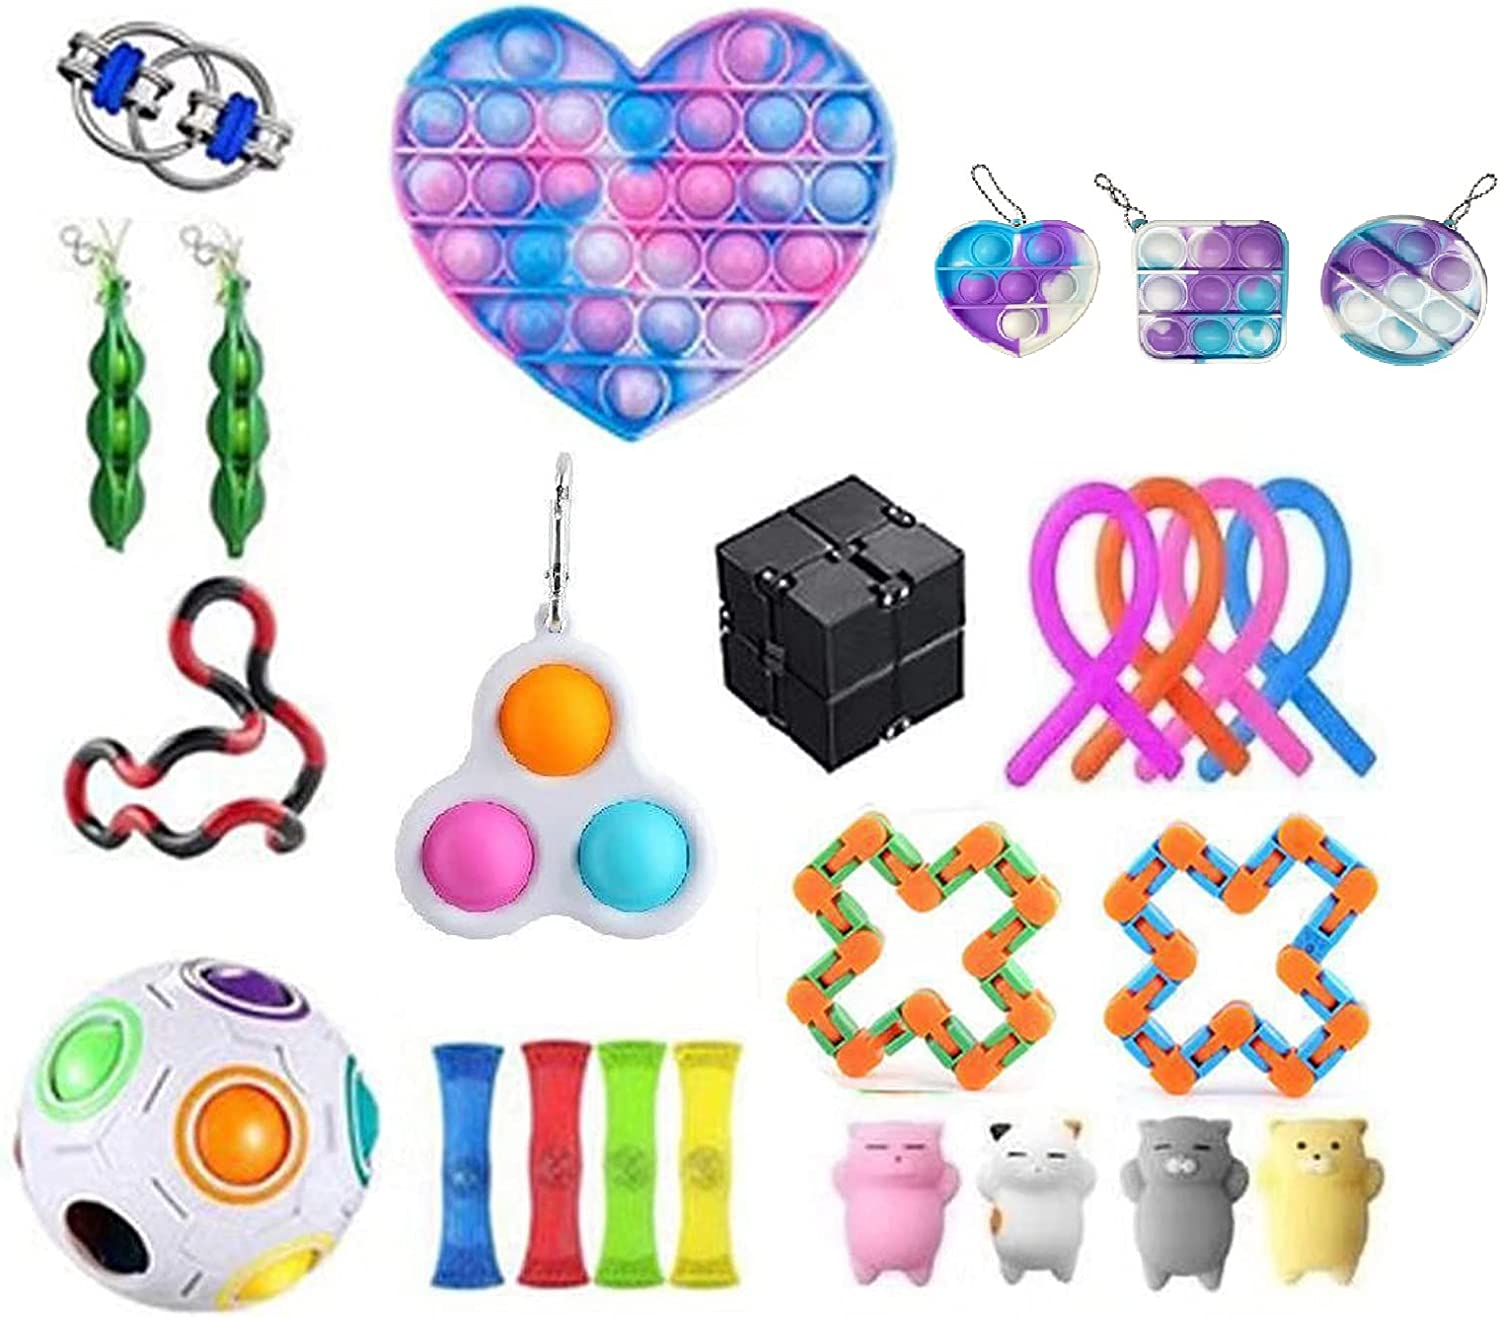 AXYRXWR Sensory Fidget Toys Set,Fidget Toys for Kids and Adults,Autism Needs Stress Reliever Anxiety Relief Toys, Special Toys Assortment for Birthday Party Favors (Random, 25 Pcs)